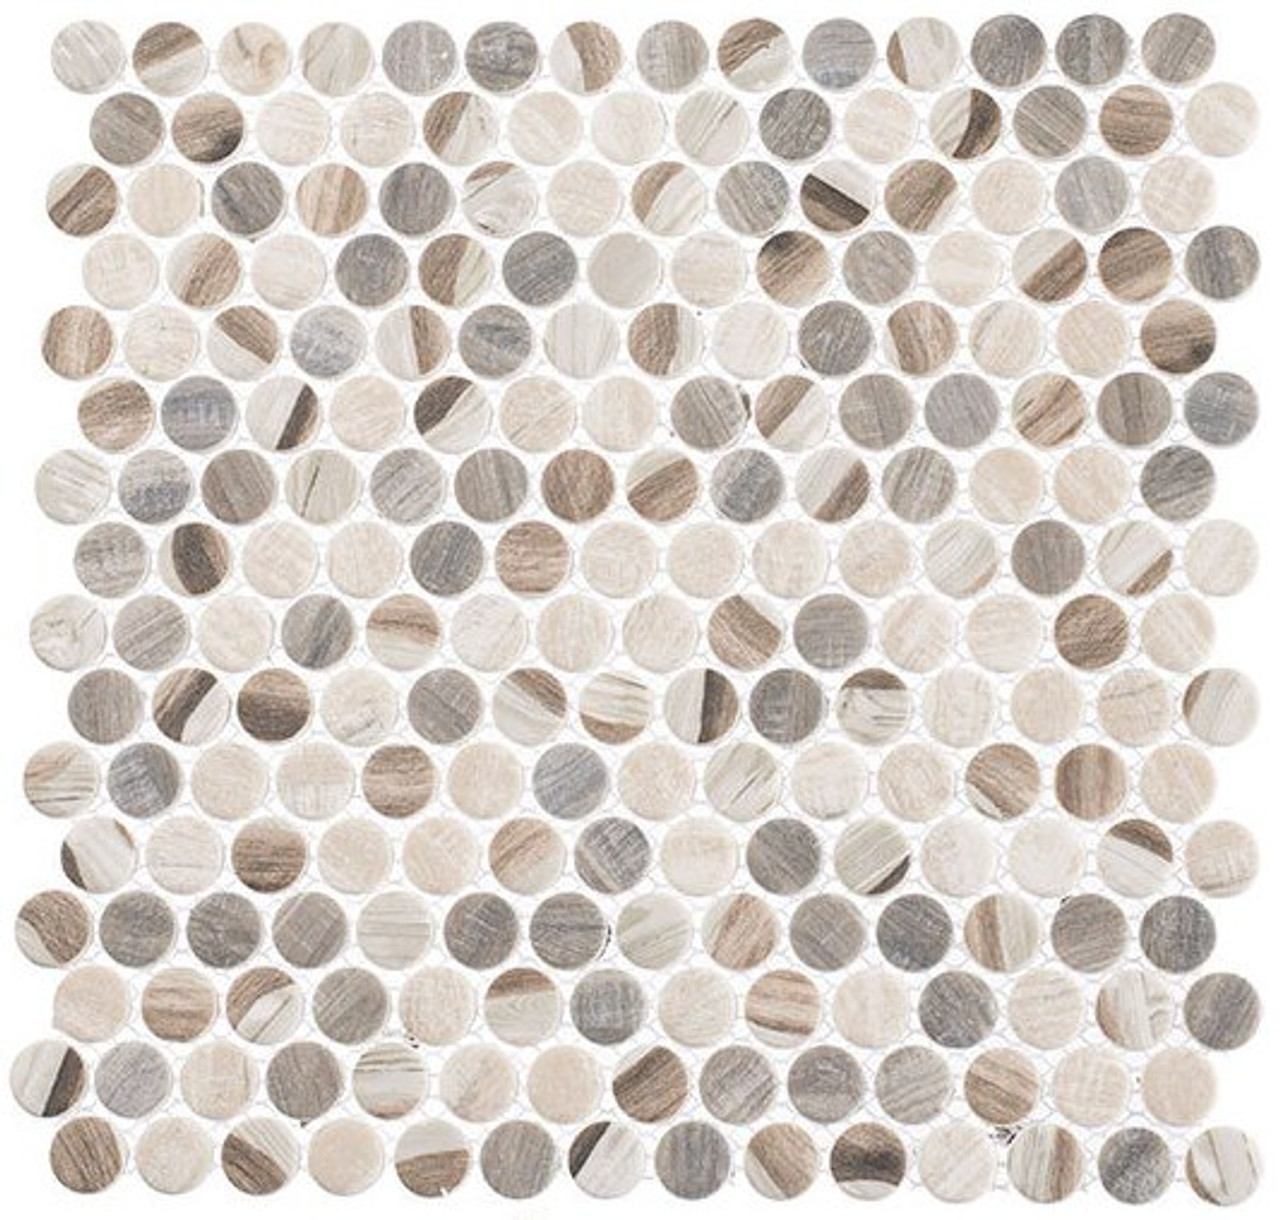 Bella Glass Tiles Pixels Series PX784 Dotted Blend